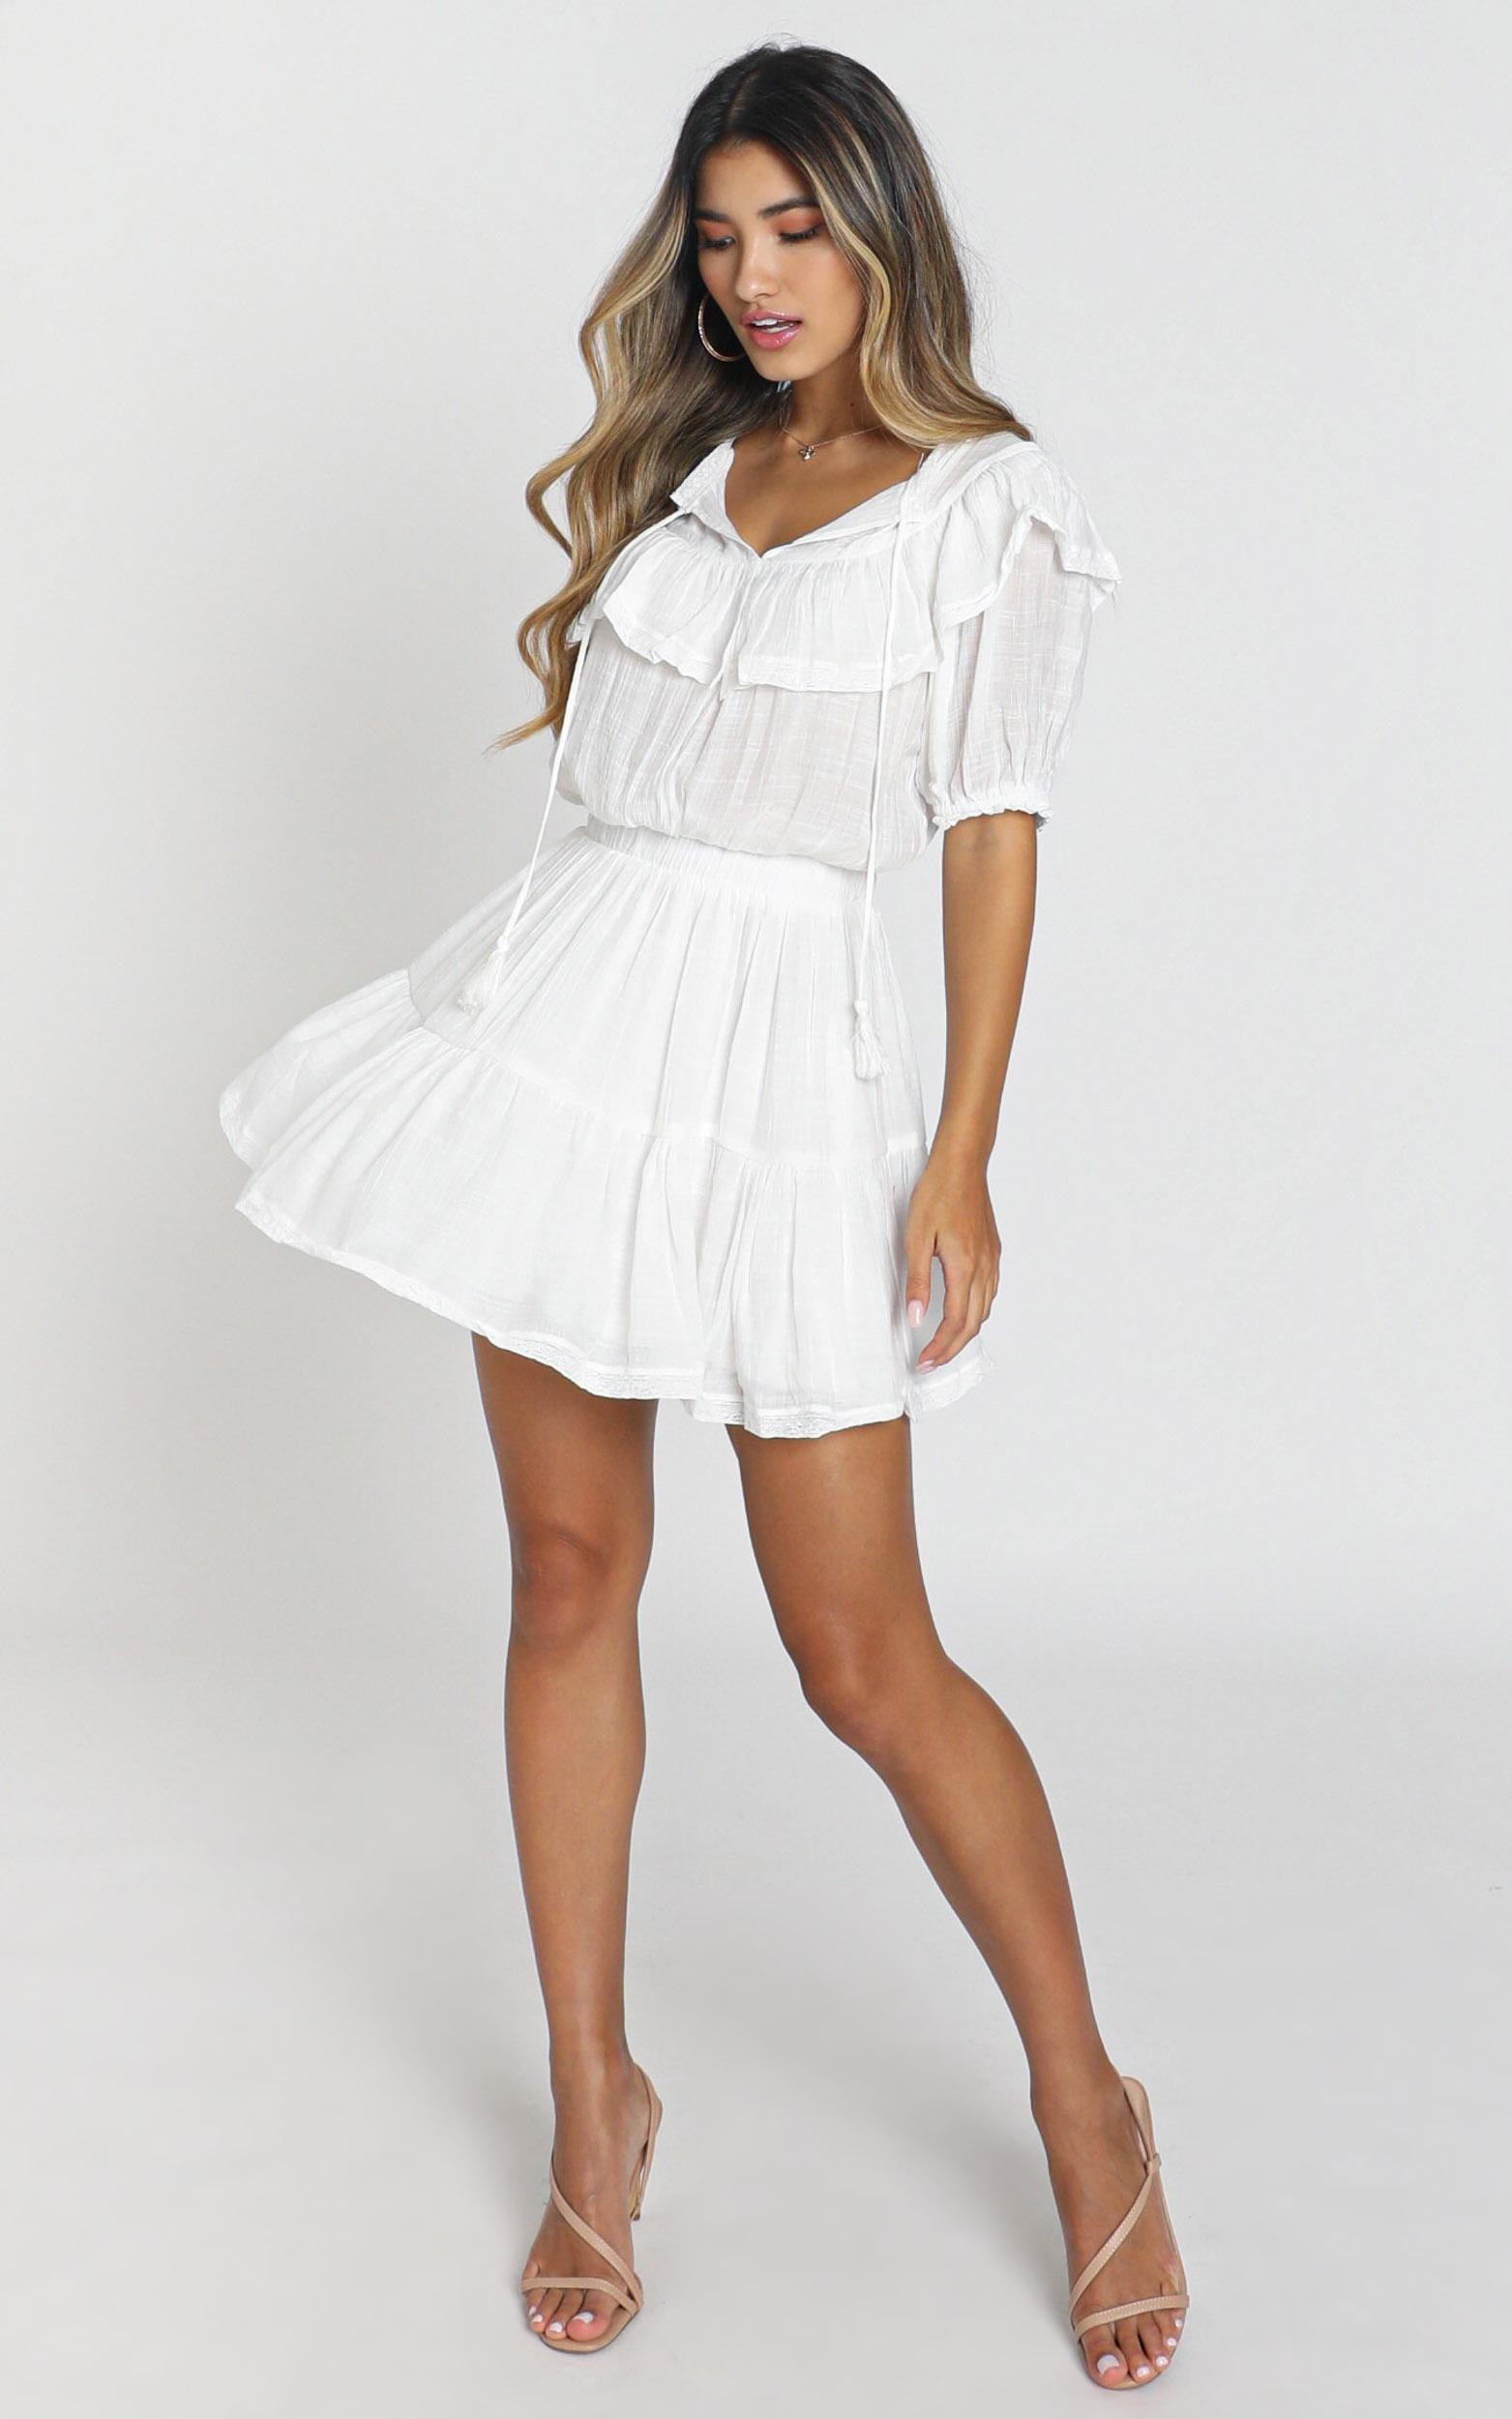 Poughkeepsie Dress in white - 8 (S), White, hi-res image number null